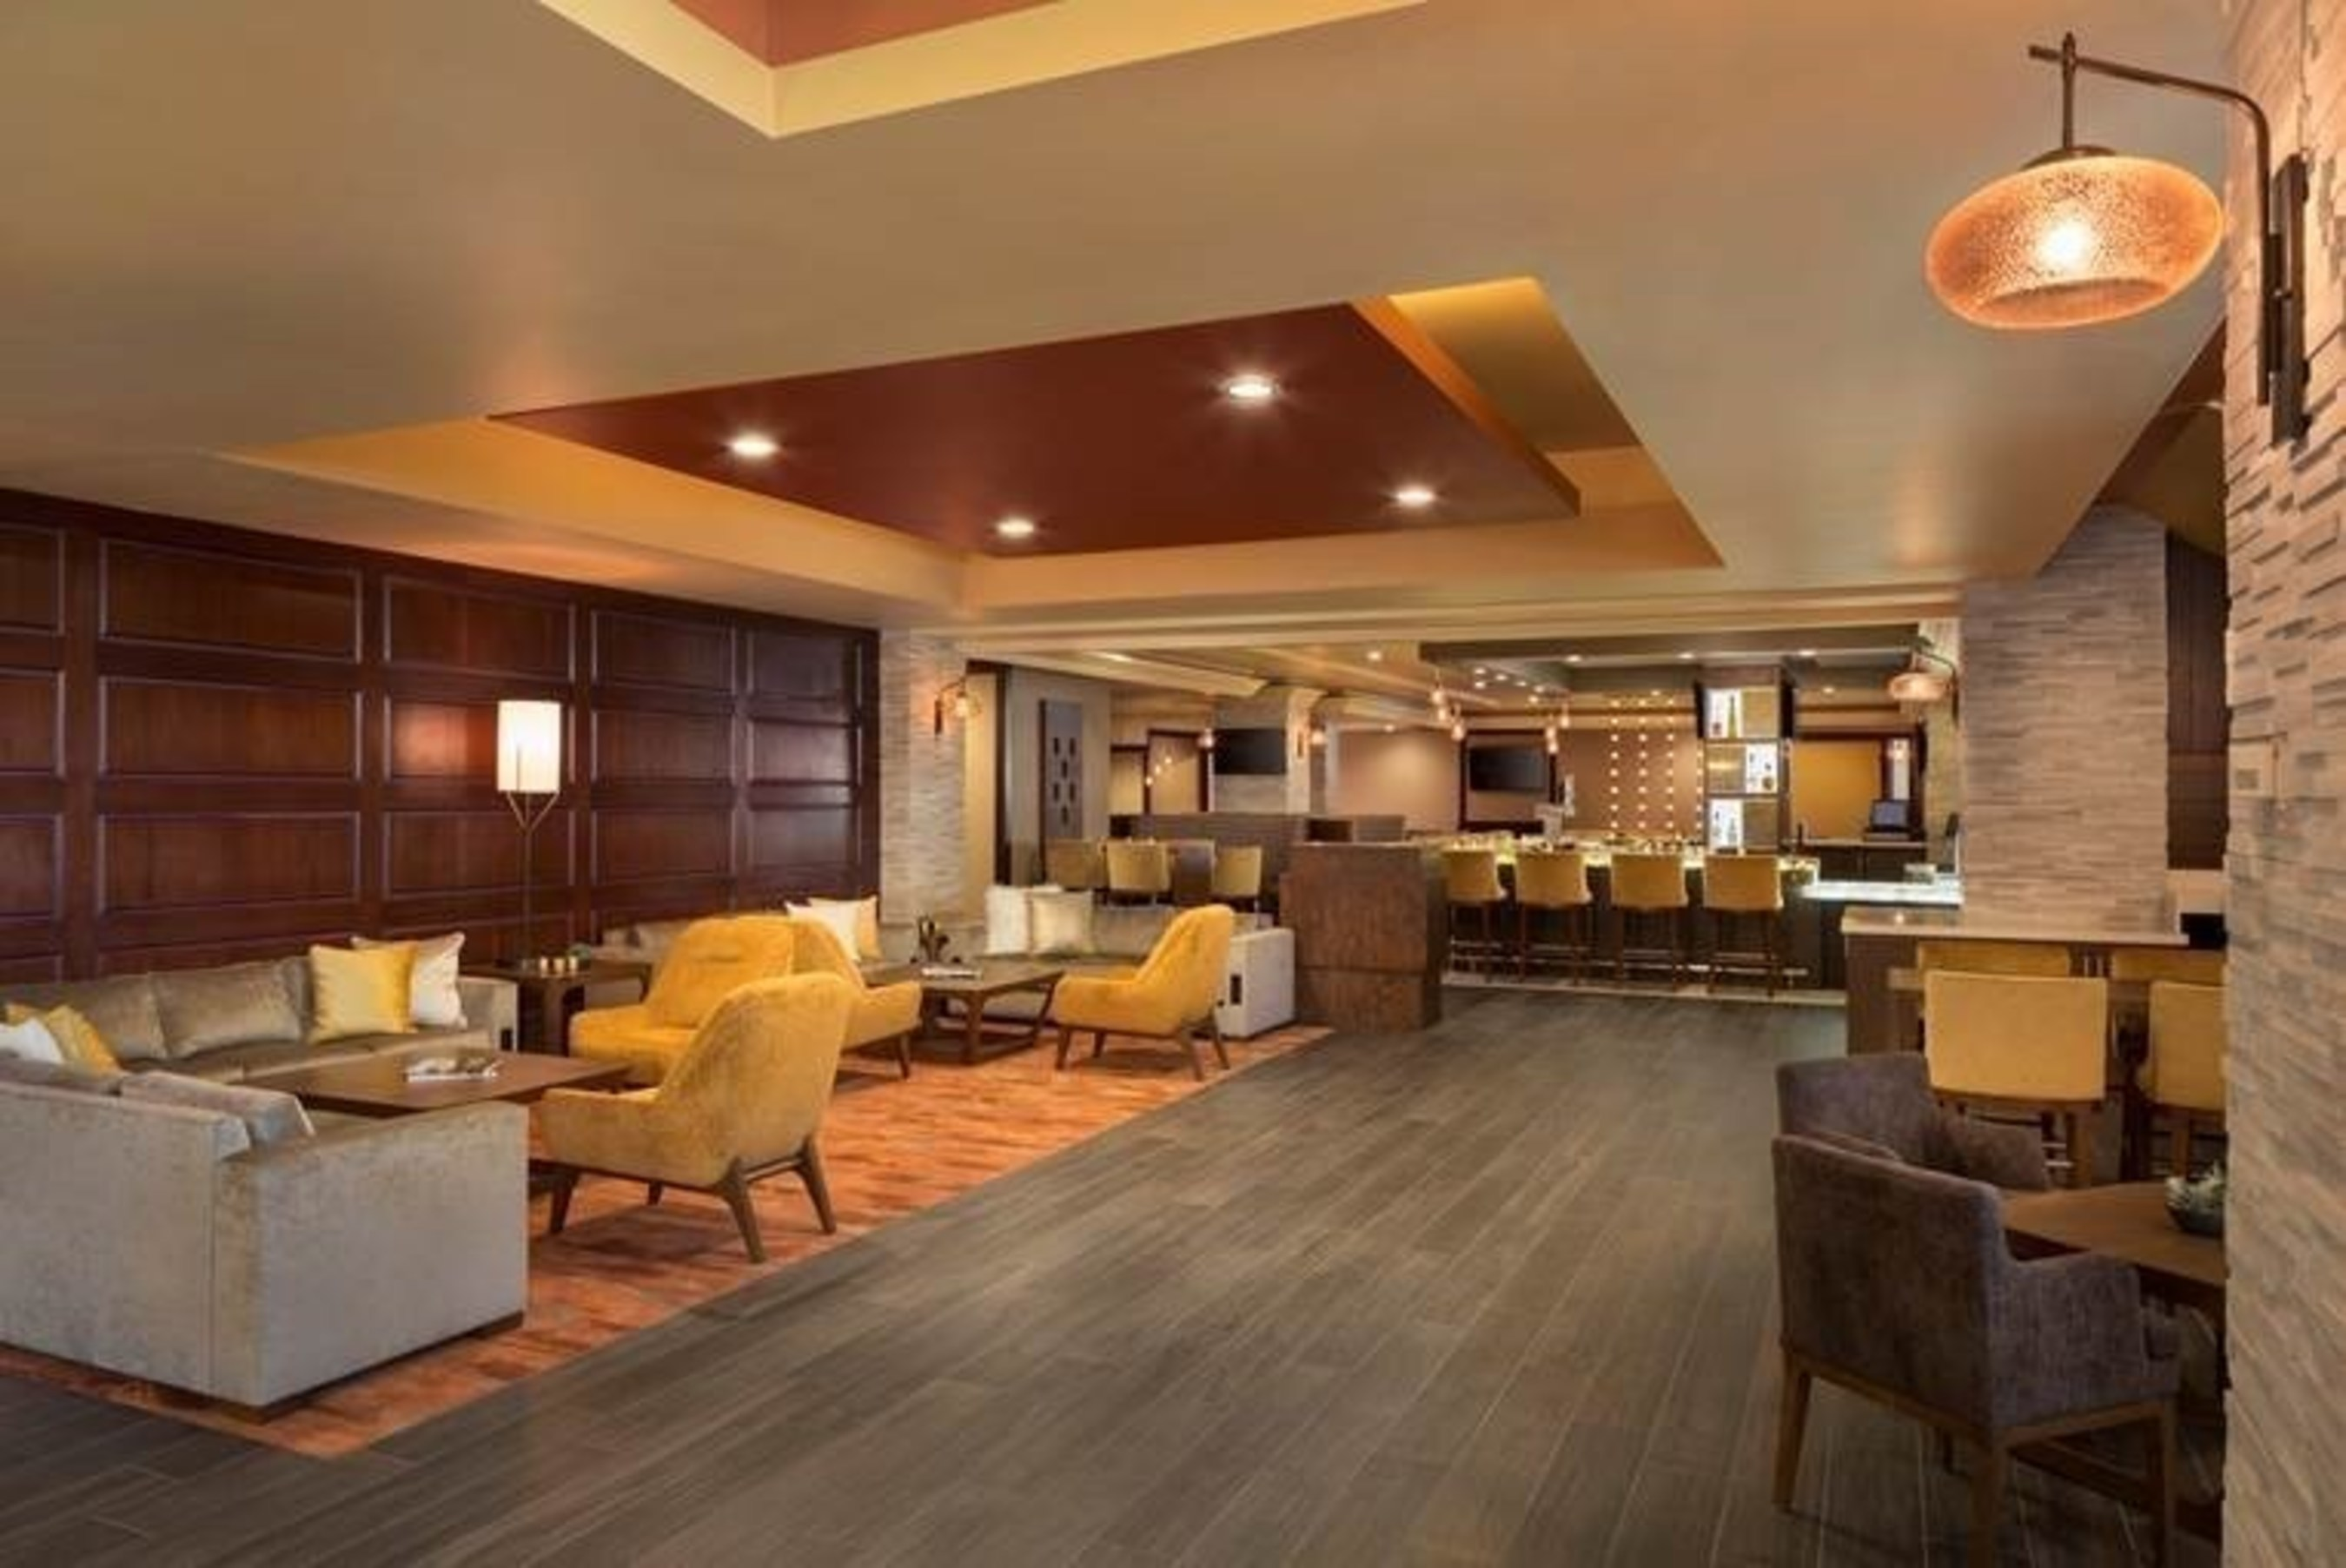 Monterey Marriott has just completed a $2.4 million renovation to offer guests comfortable places to meet, mingle, relax and dine in style. The lobby, Great Room and Fin + Field restaurant under Chef Samuel Santos were recently unveiled. For information, visit www.marriott.com/MRYCA or call 1-831-649-4234.